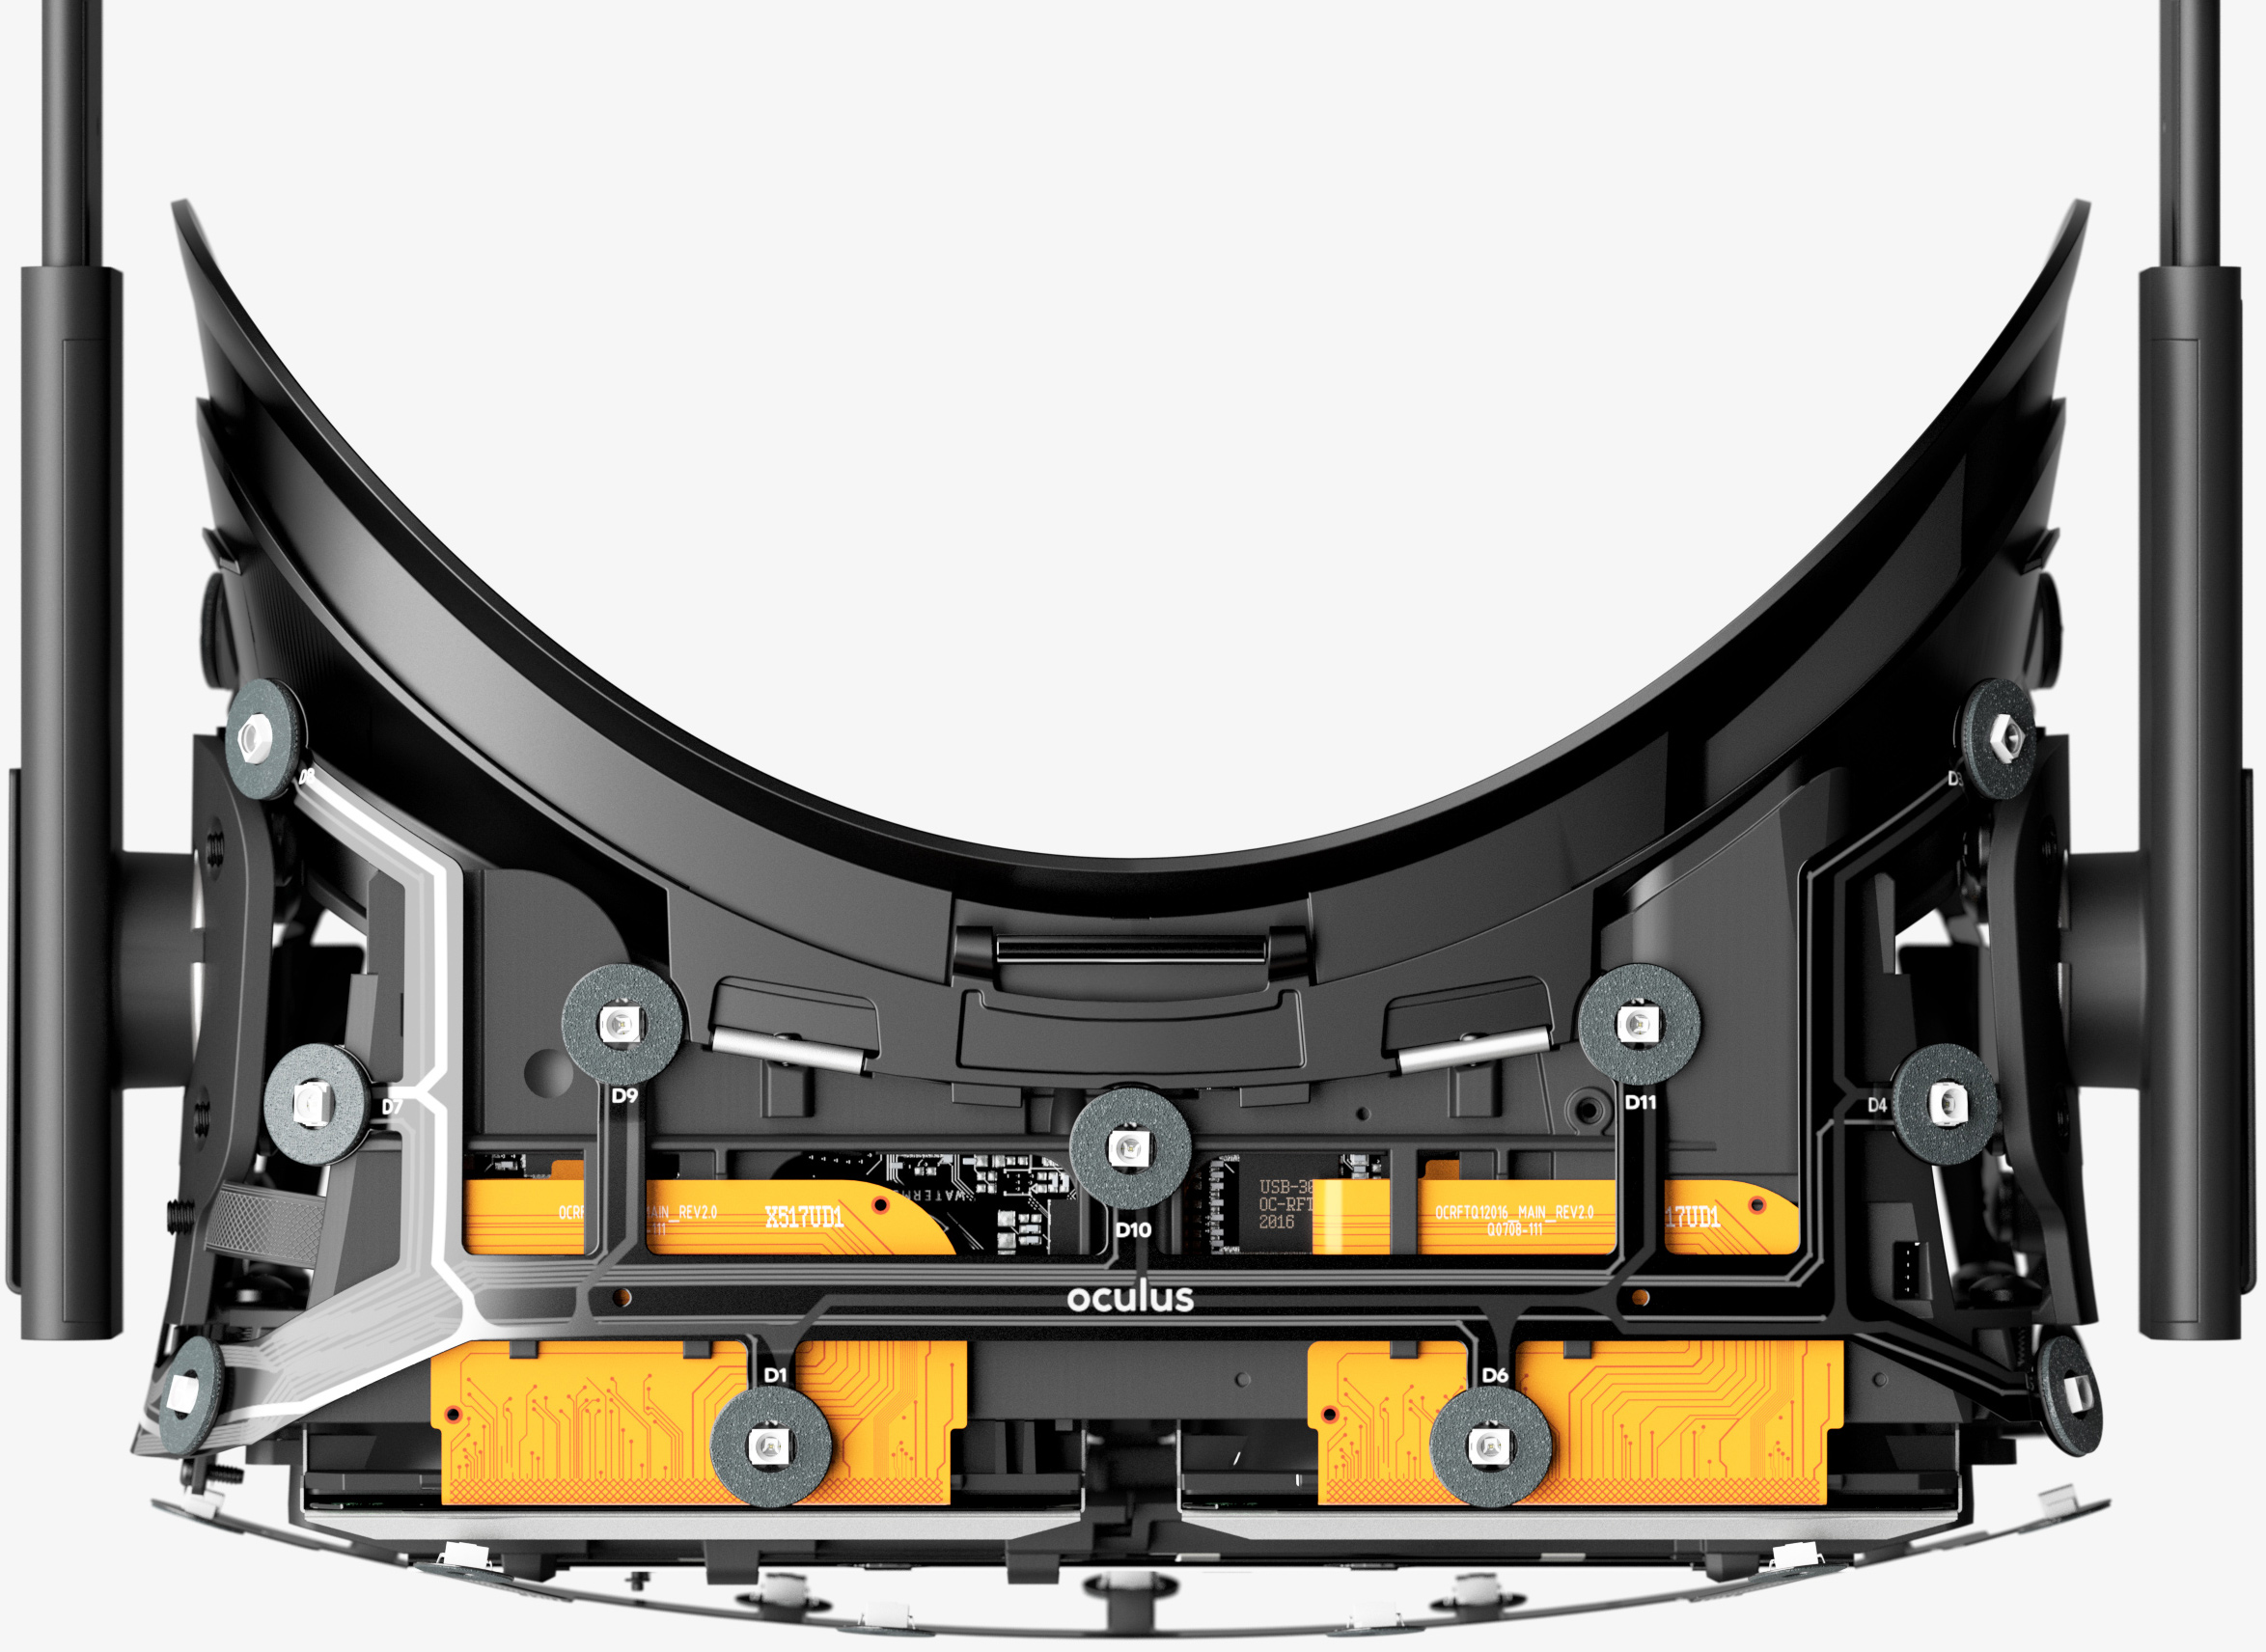 e4f8ce5ce8c The Oculus Rift virtual reality headset uses a lot of custom components  that were designed specifically for this device. For example